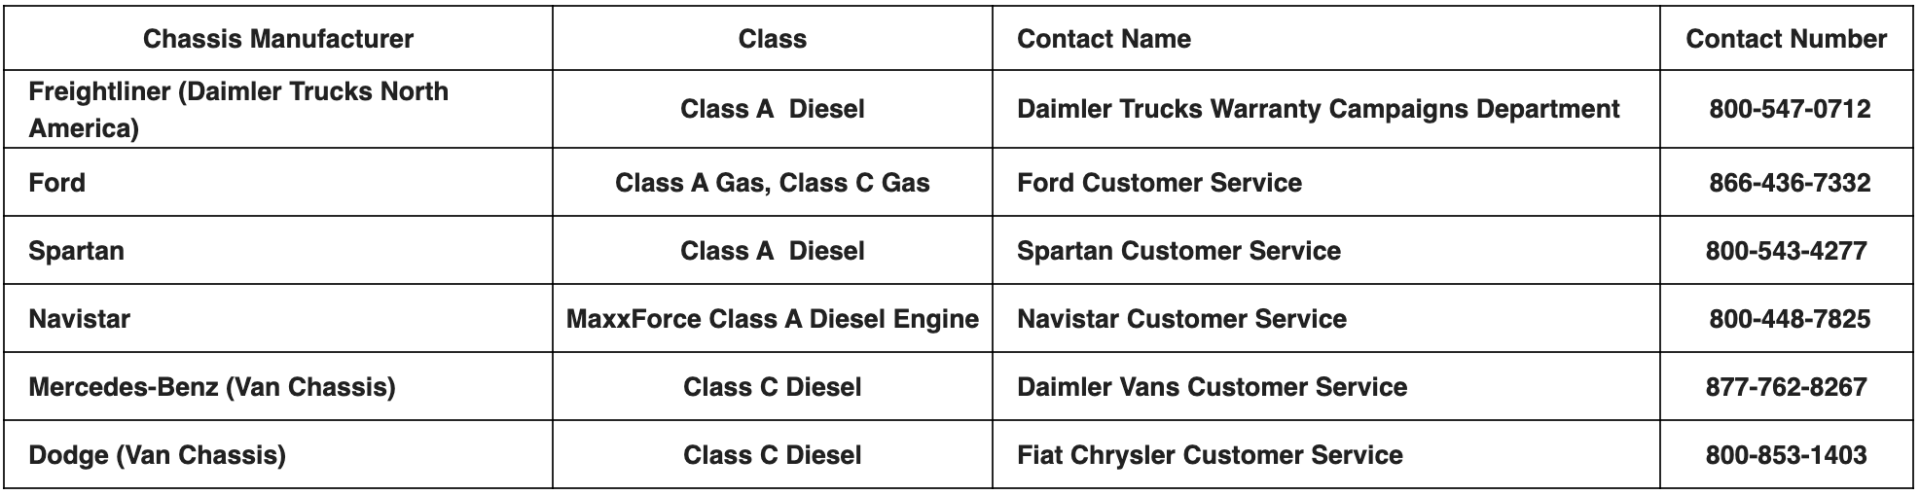 Chassis Suplier Grid